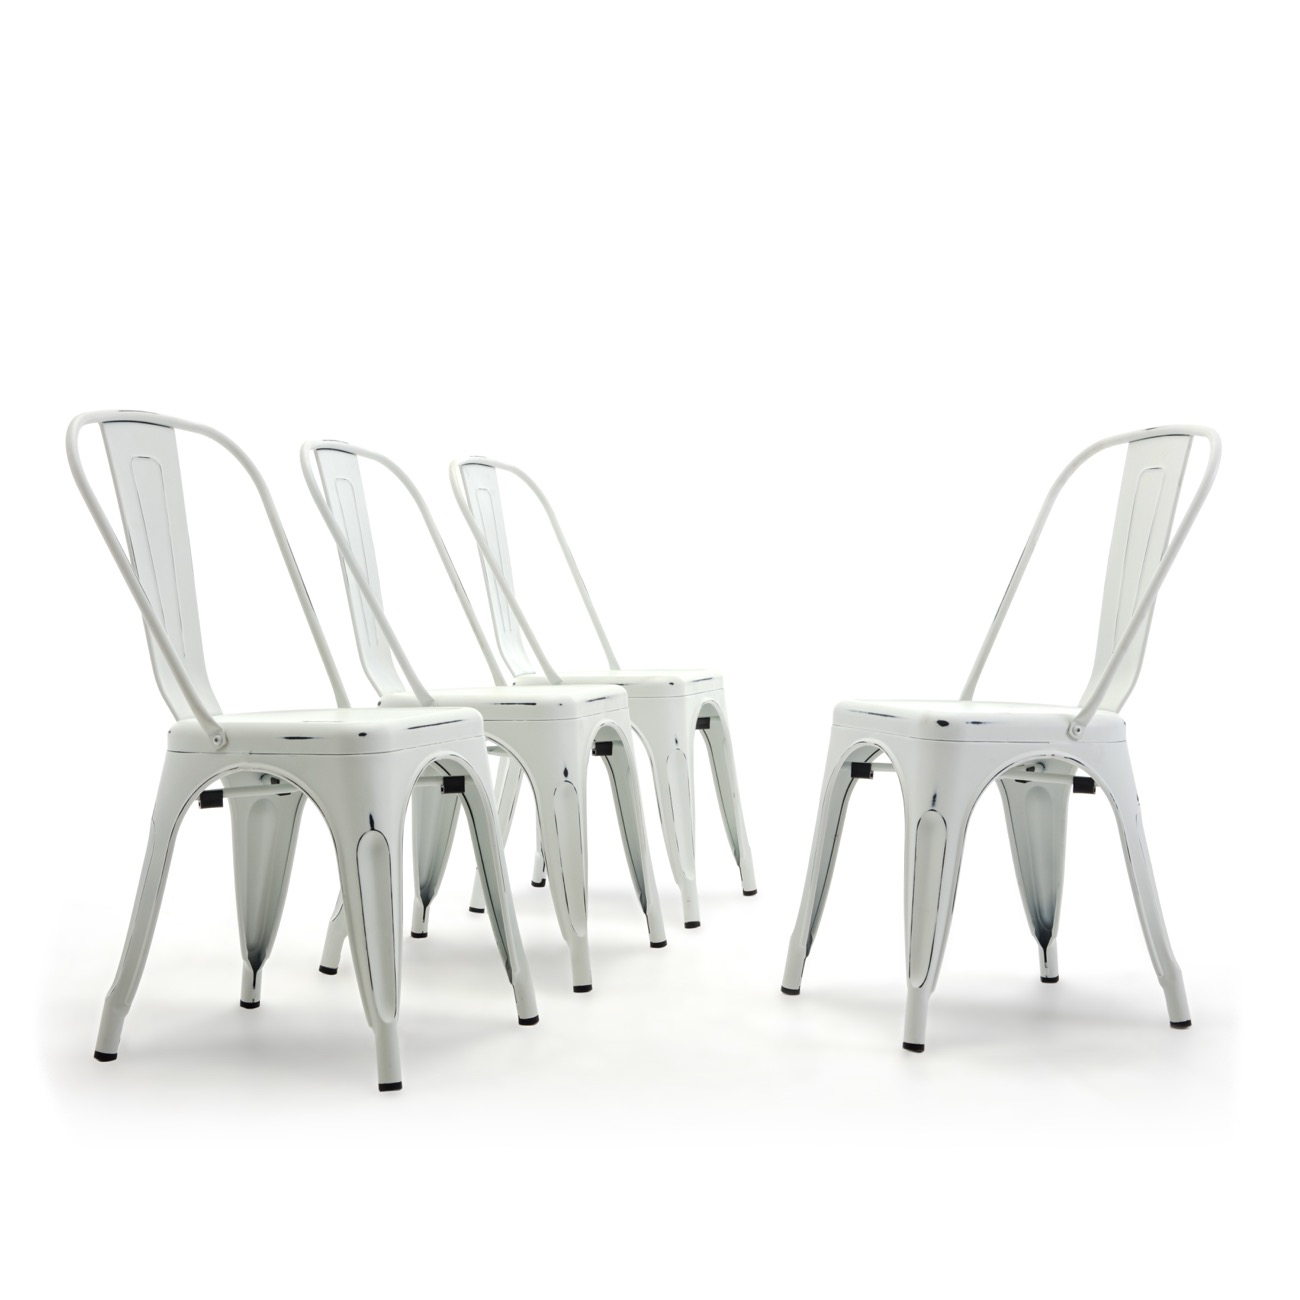 Details about set of 4 metal bistro cafe modern style dining chairs stackable antique white